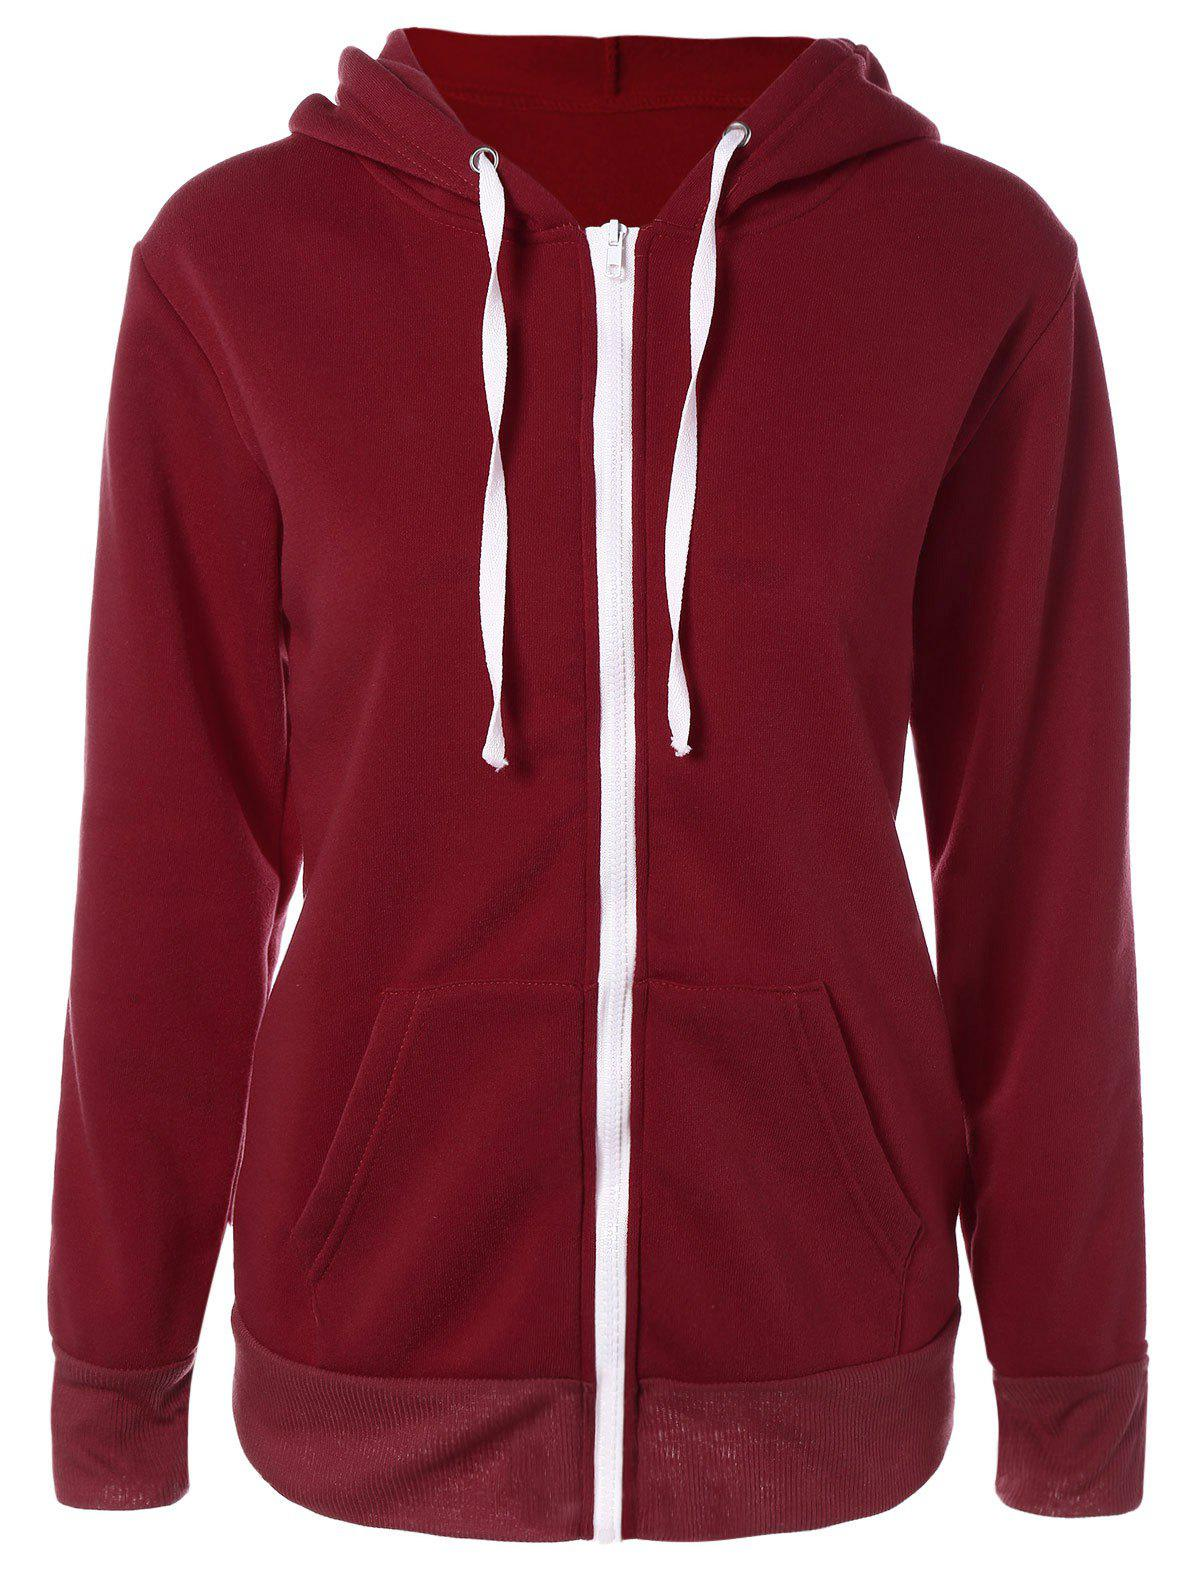 Solid Color Zip Up Fleece Warm Hoodie - WINE RED S